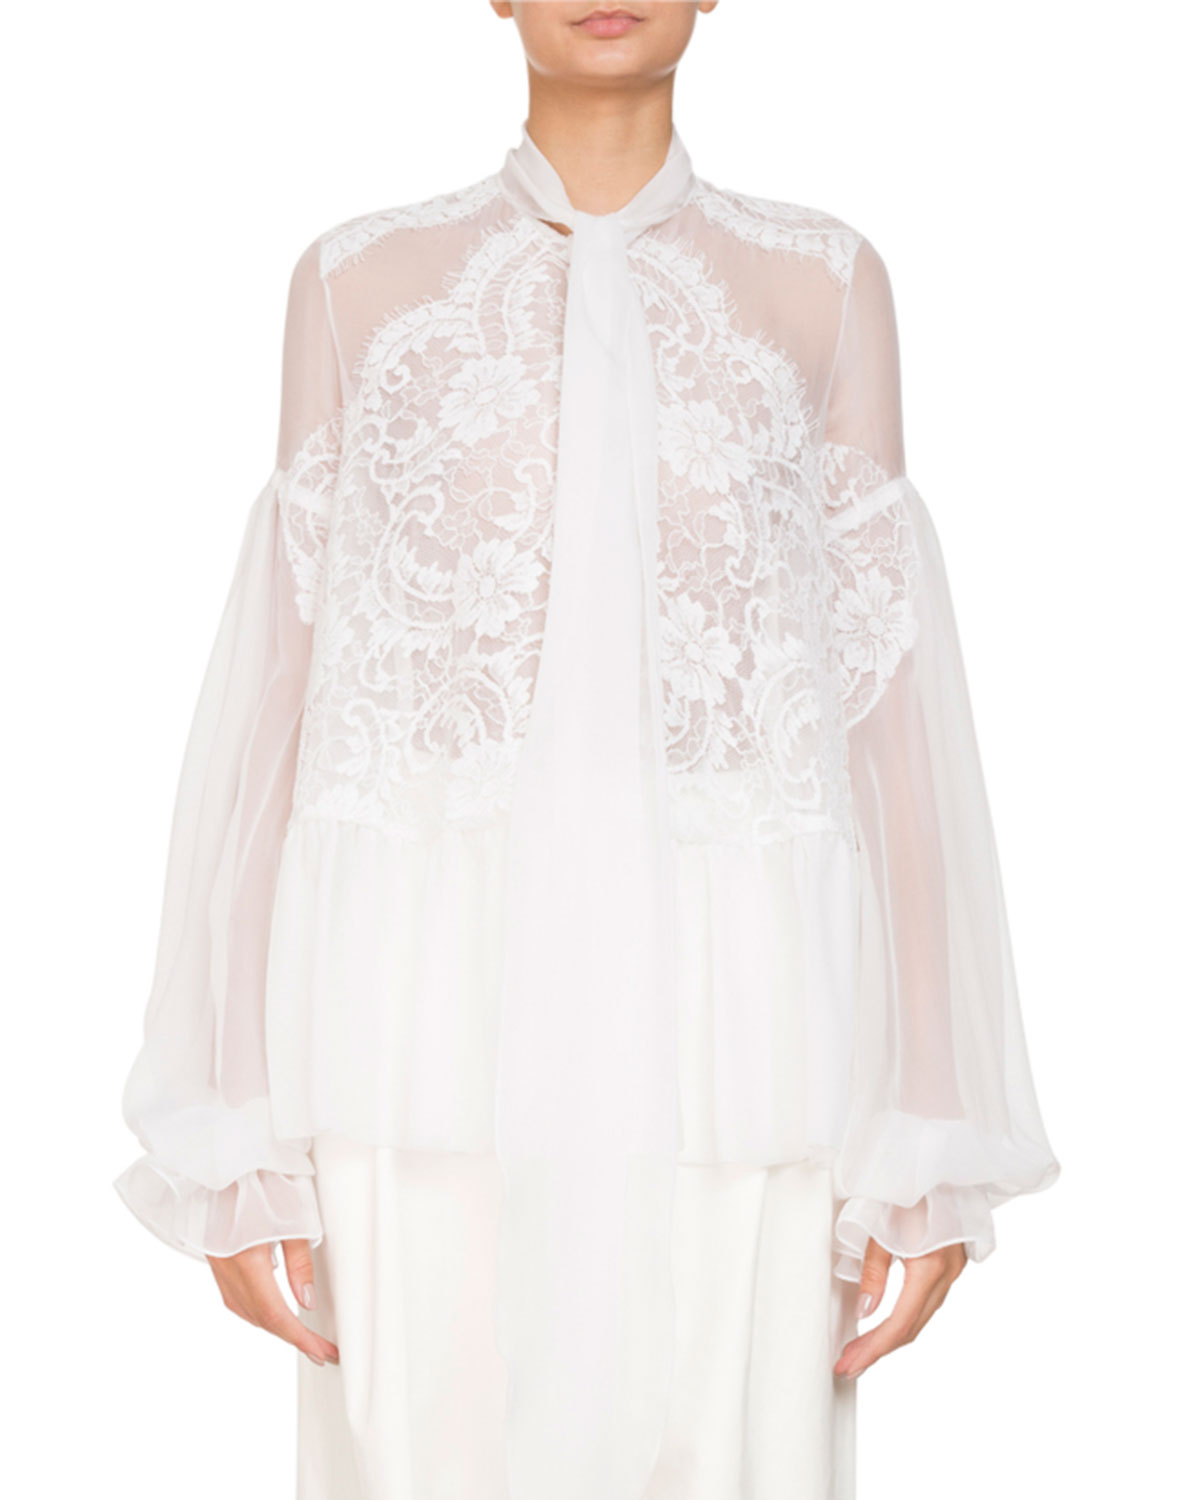 cb6518391ce19 Givenchy Long-Sleeve Flounce-Hem Sheer Silk Georgette Blouse w  Lace ...